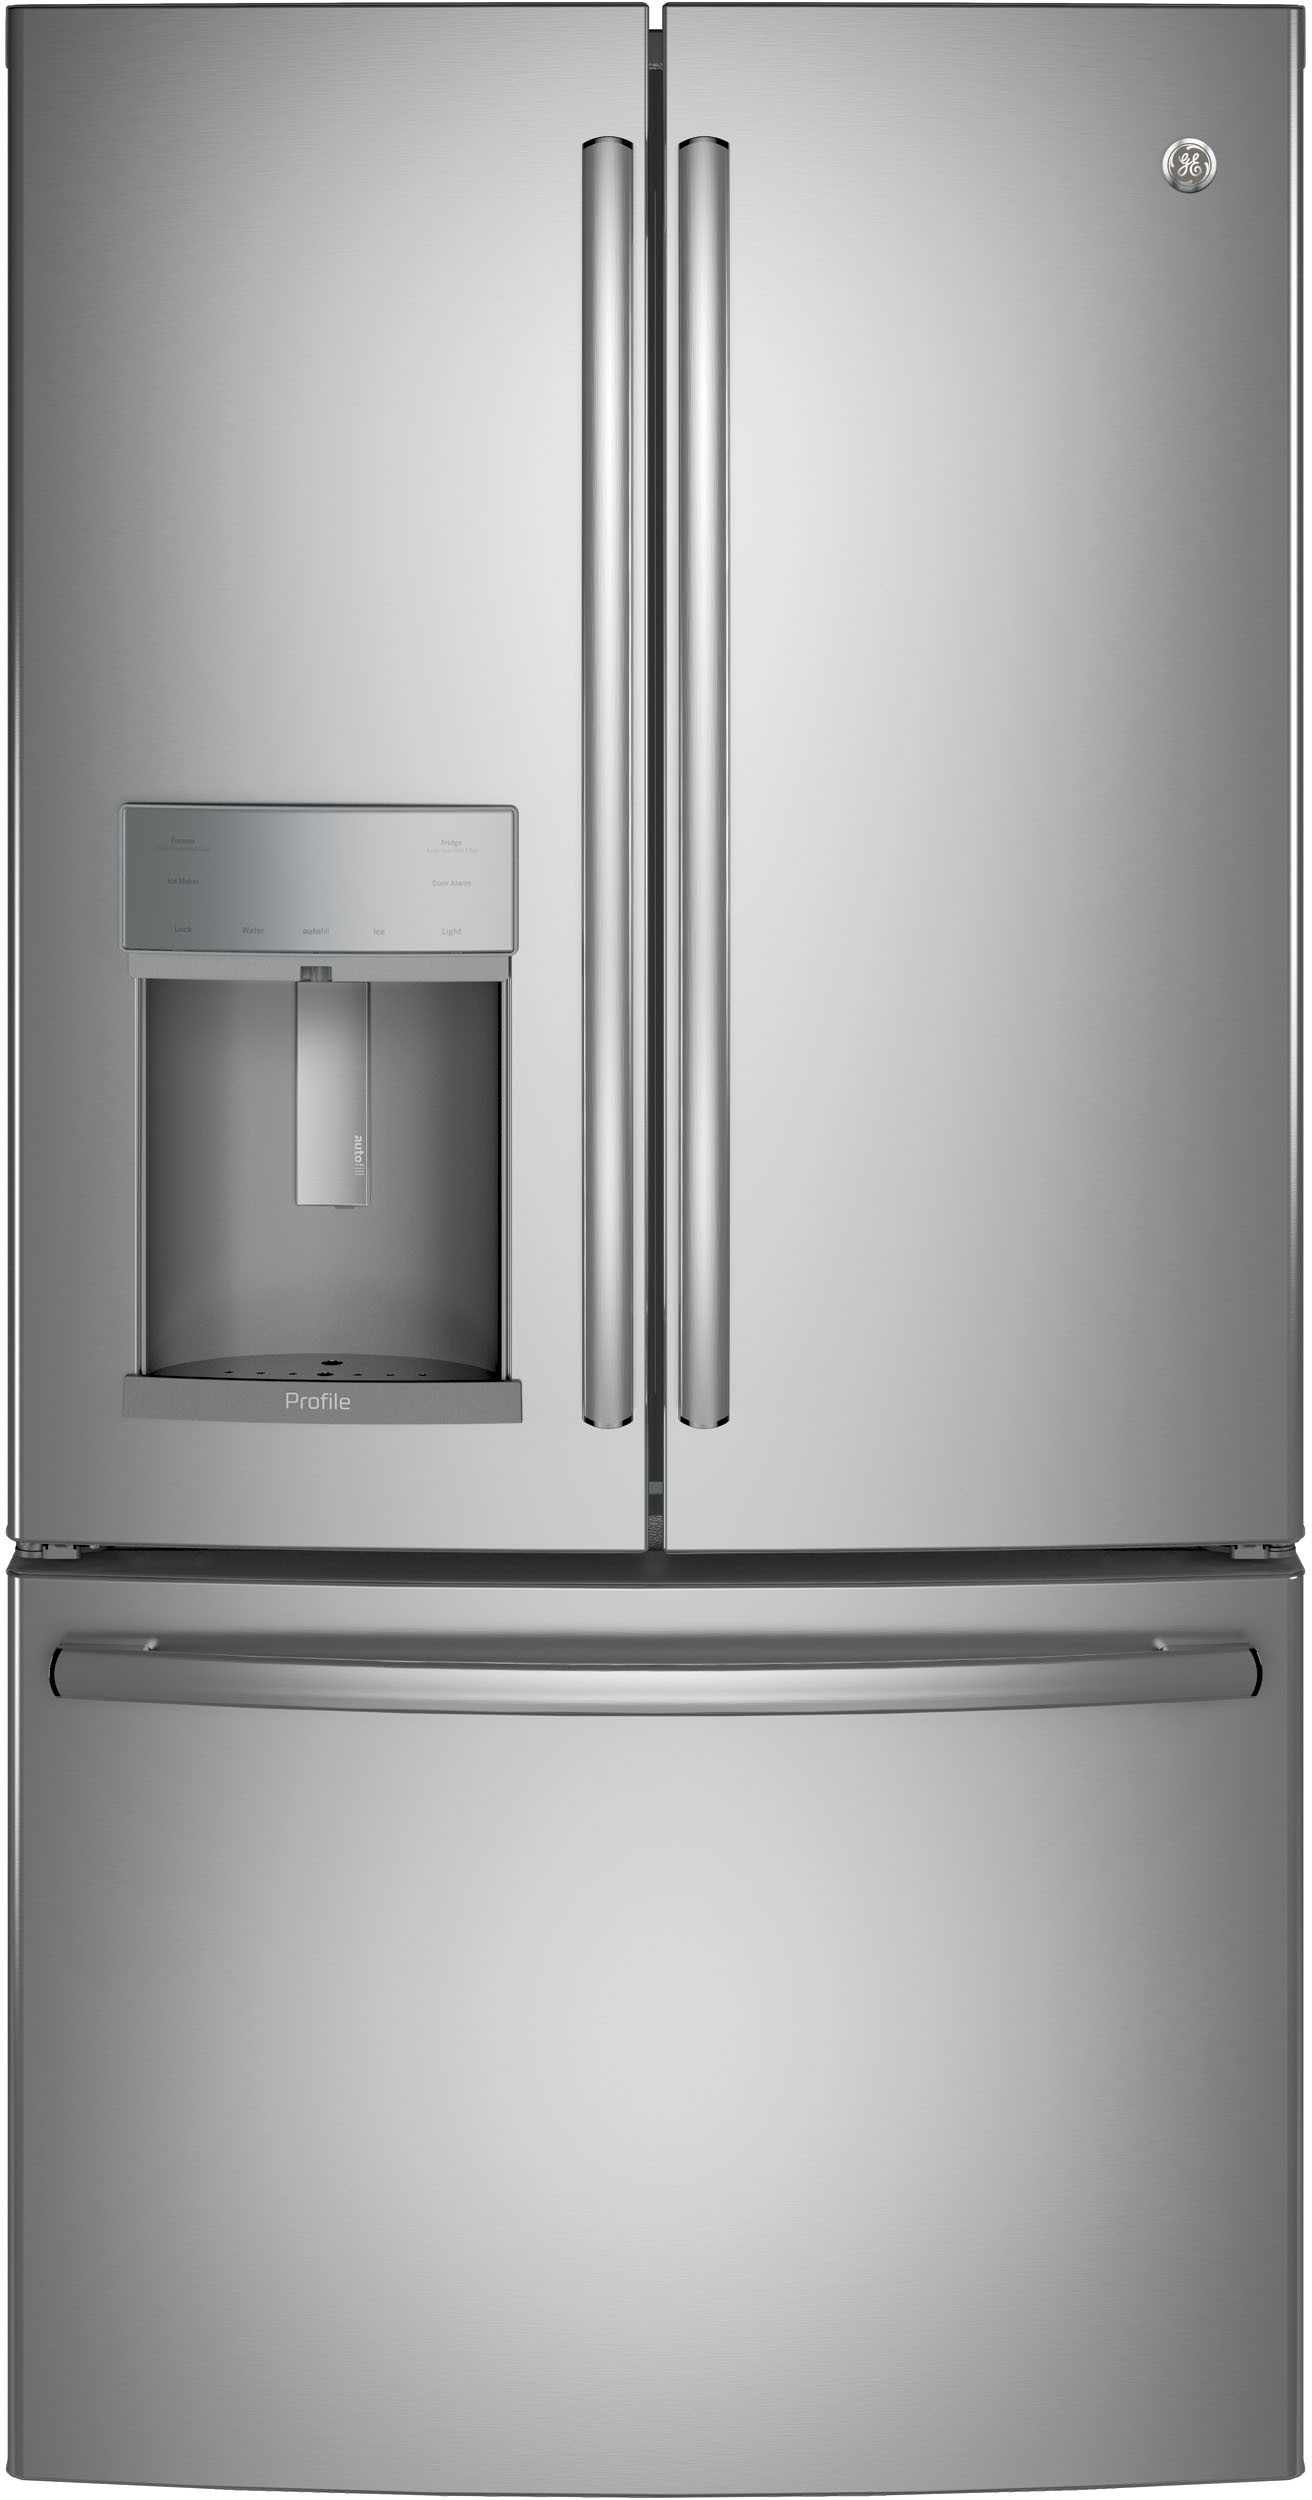 Fisher and paykel french door fridge reviews - Fisher And Paykel French Door Fridge Reviews 57